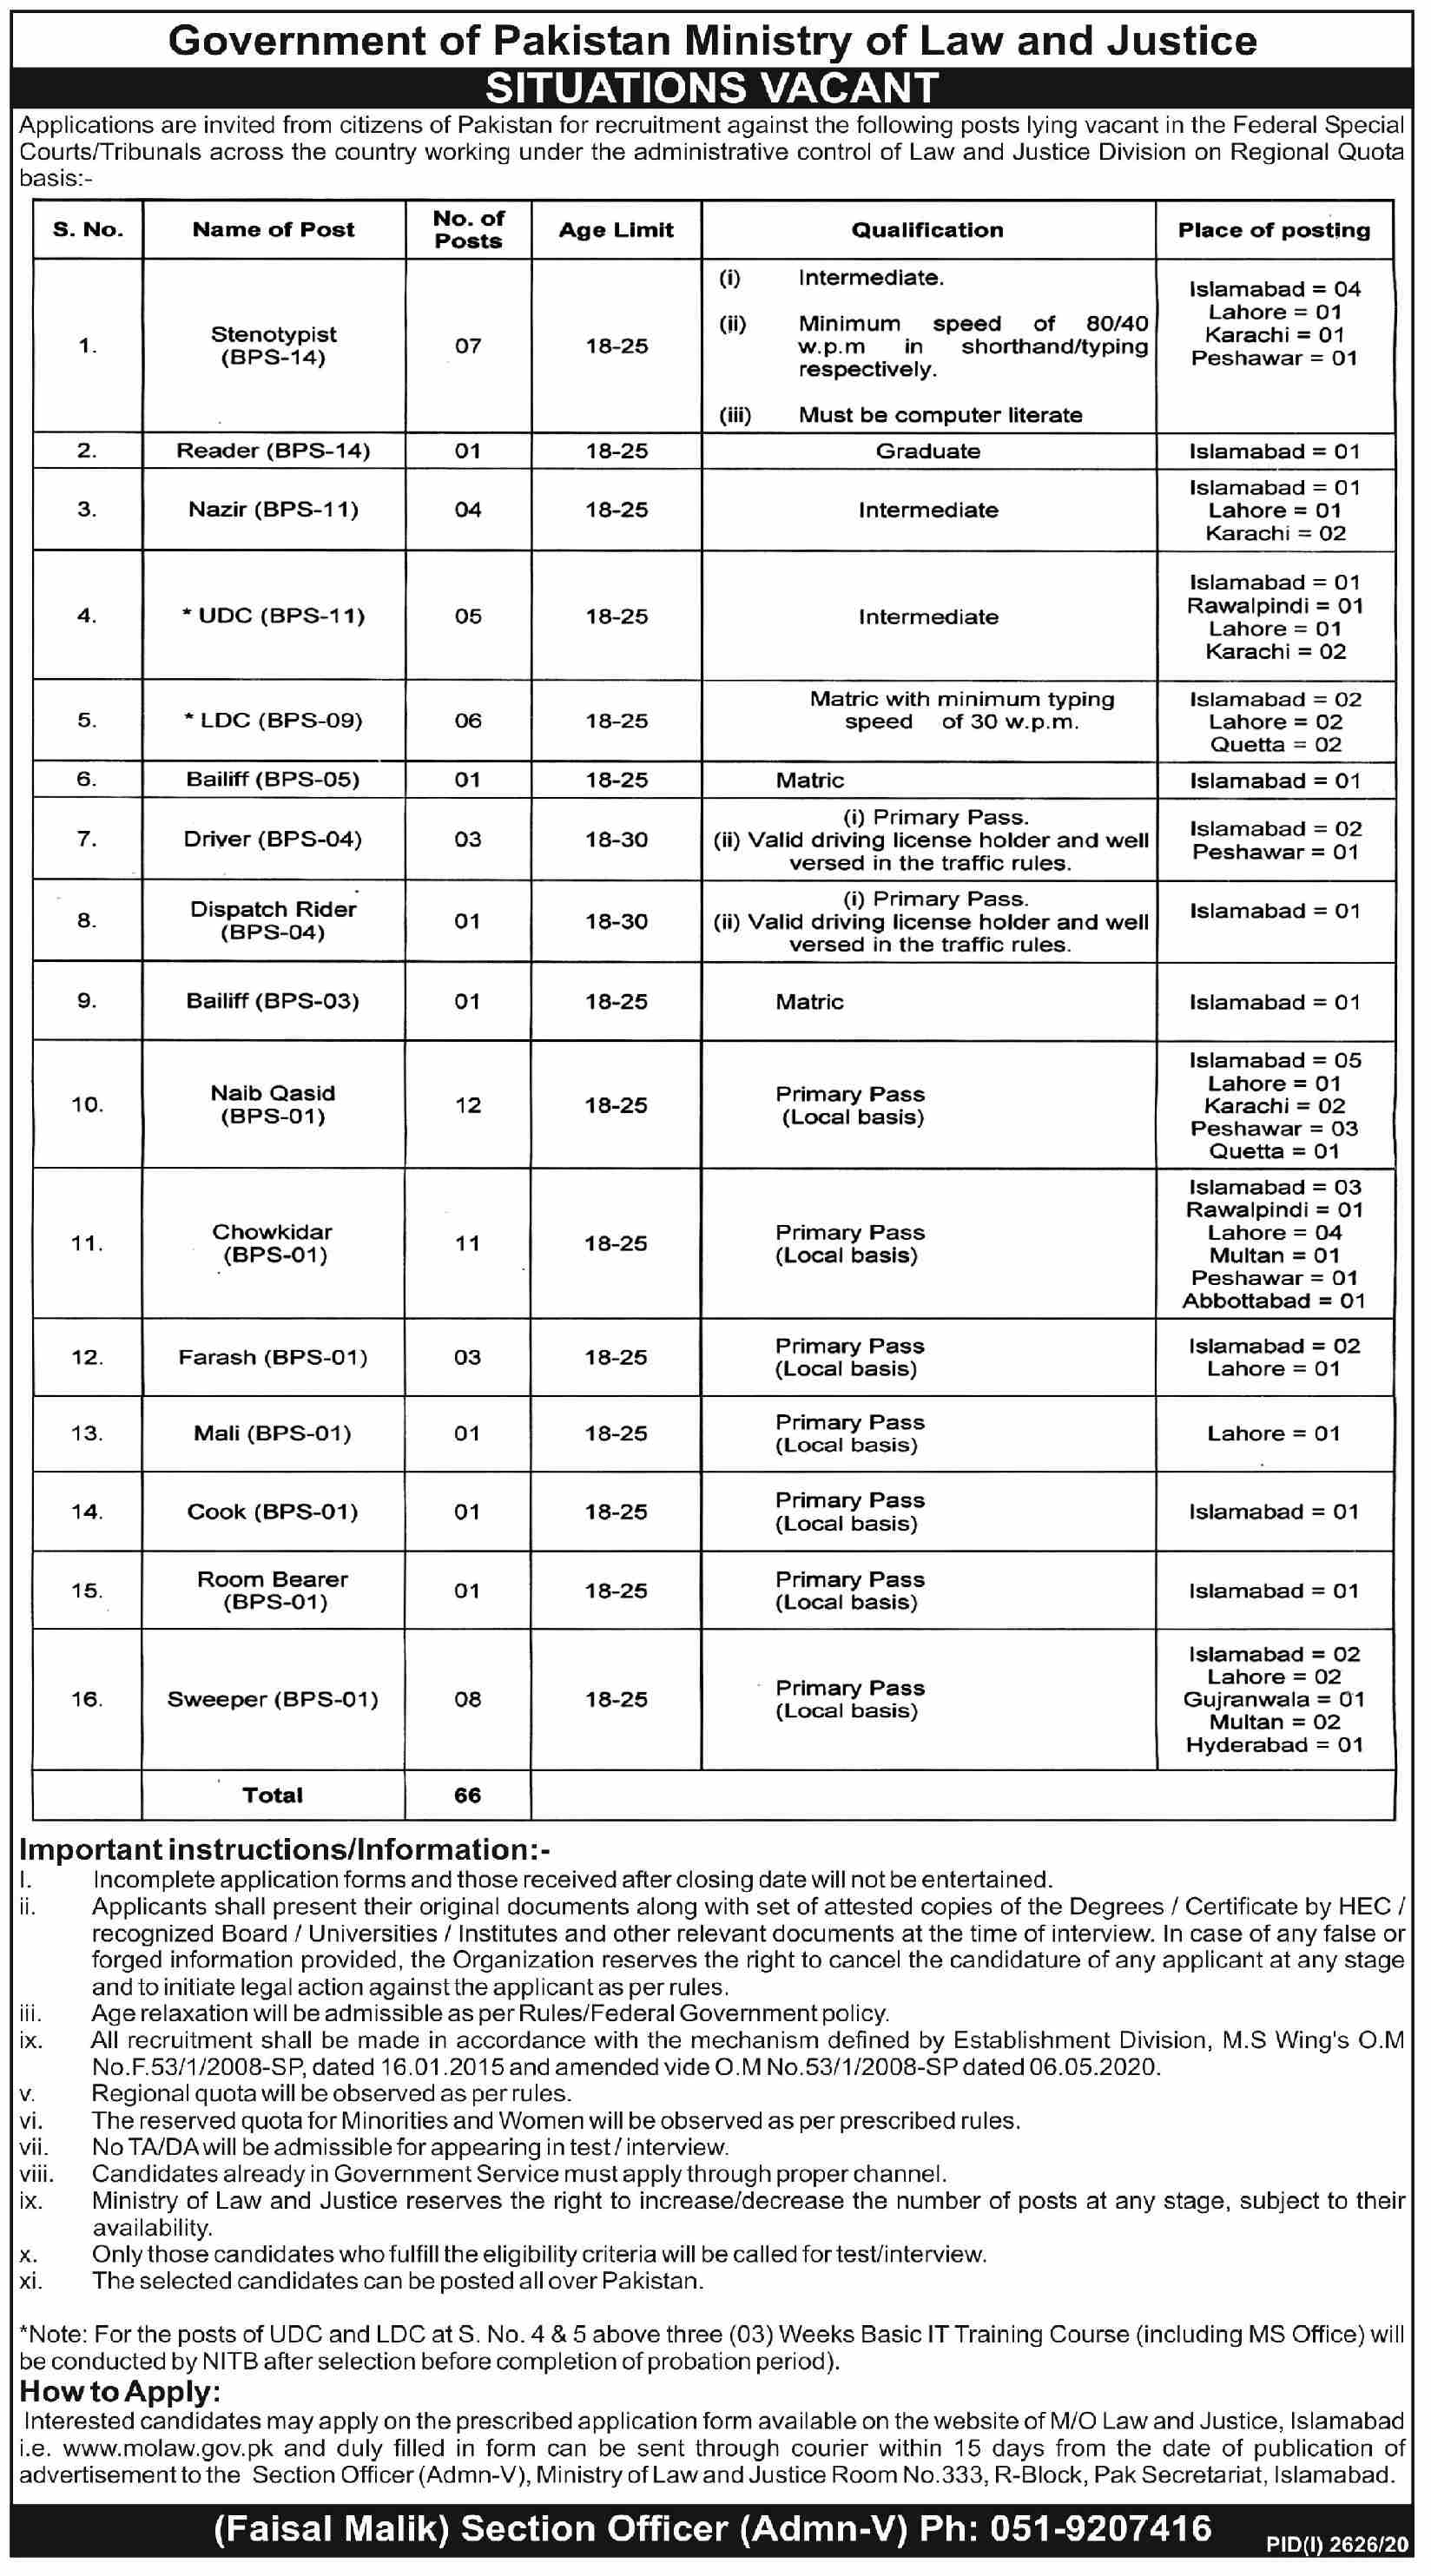 Ministry Of Law & Justice jobs newspaper ad for Farash in Islamabad